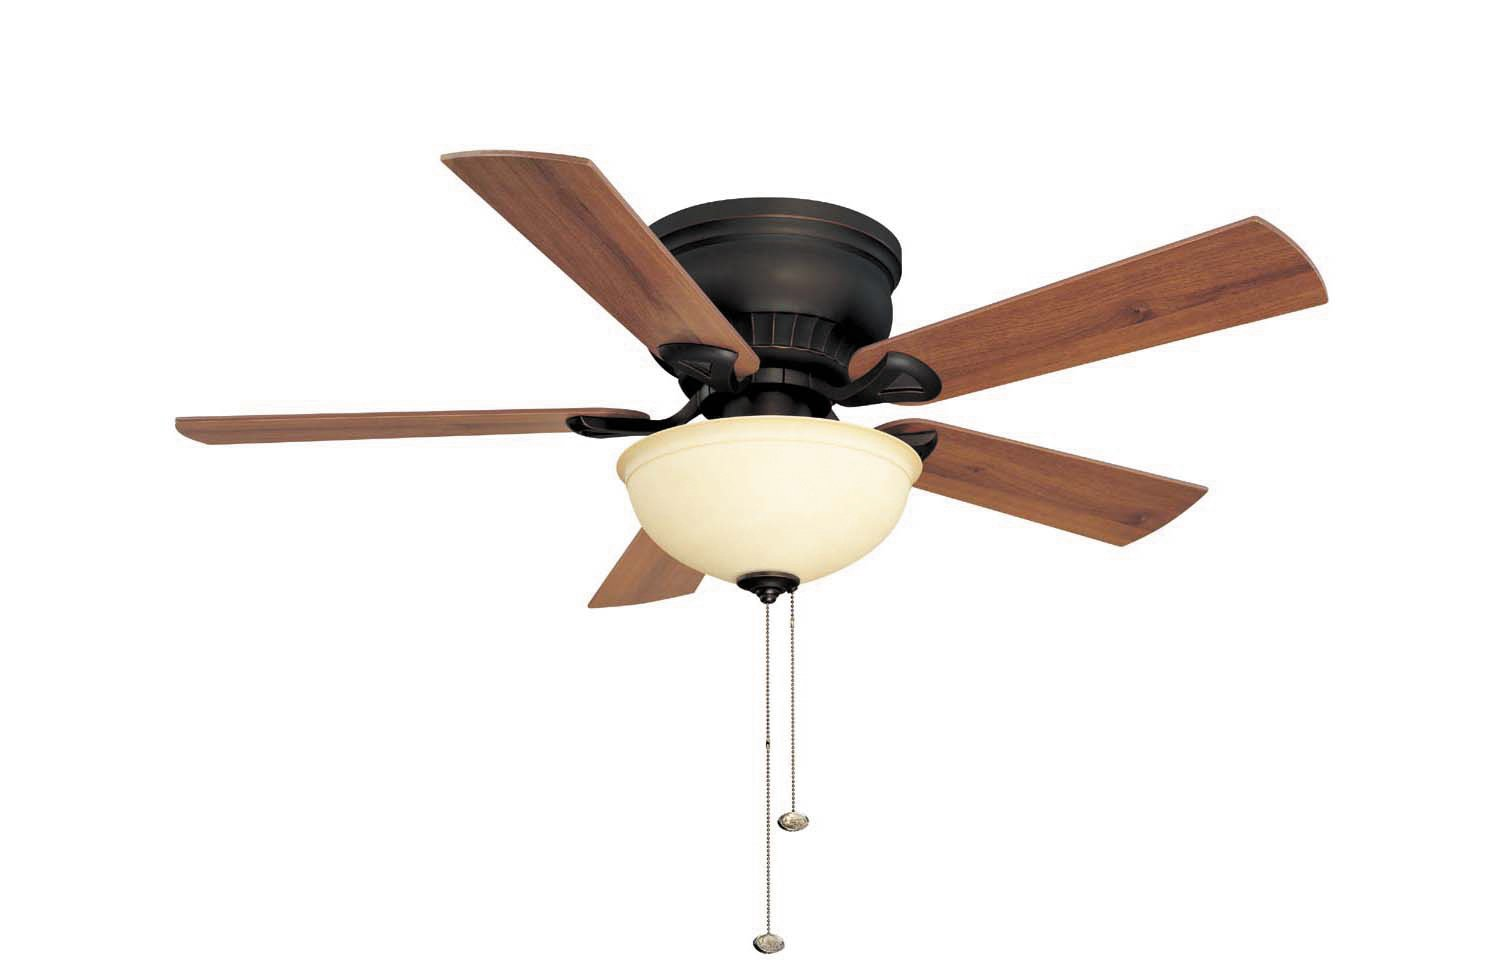 Litex Csu44hrb5c1 Crosley Collection 44 Inch Ceiling Fan With Five Reversible Teak Walnut Blades And Single Light Kit Amber Glass Com